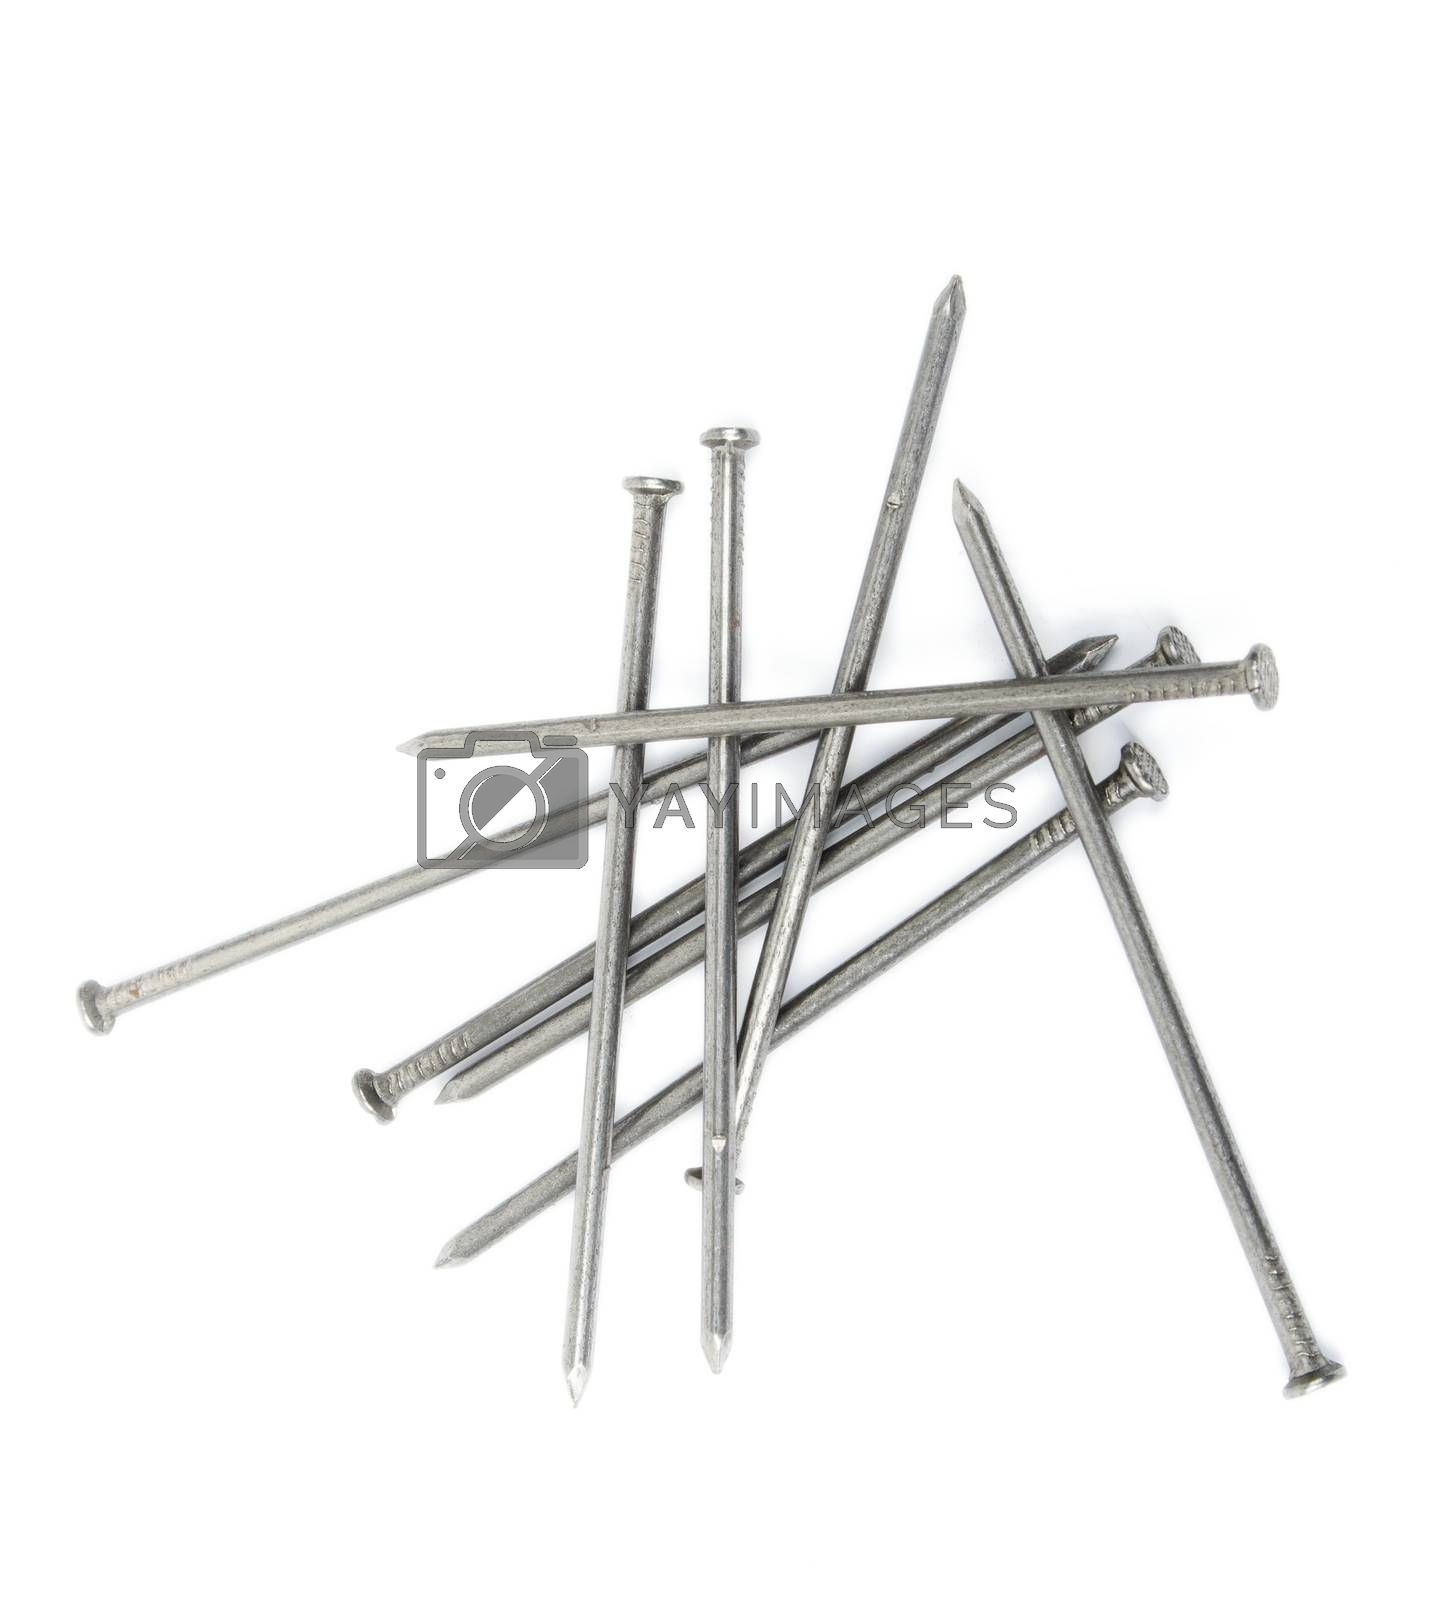 An image of Iron nails on white background